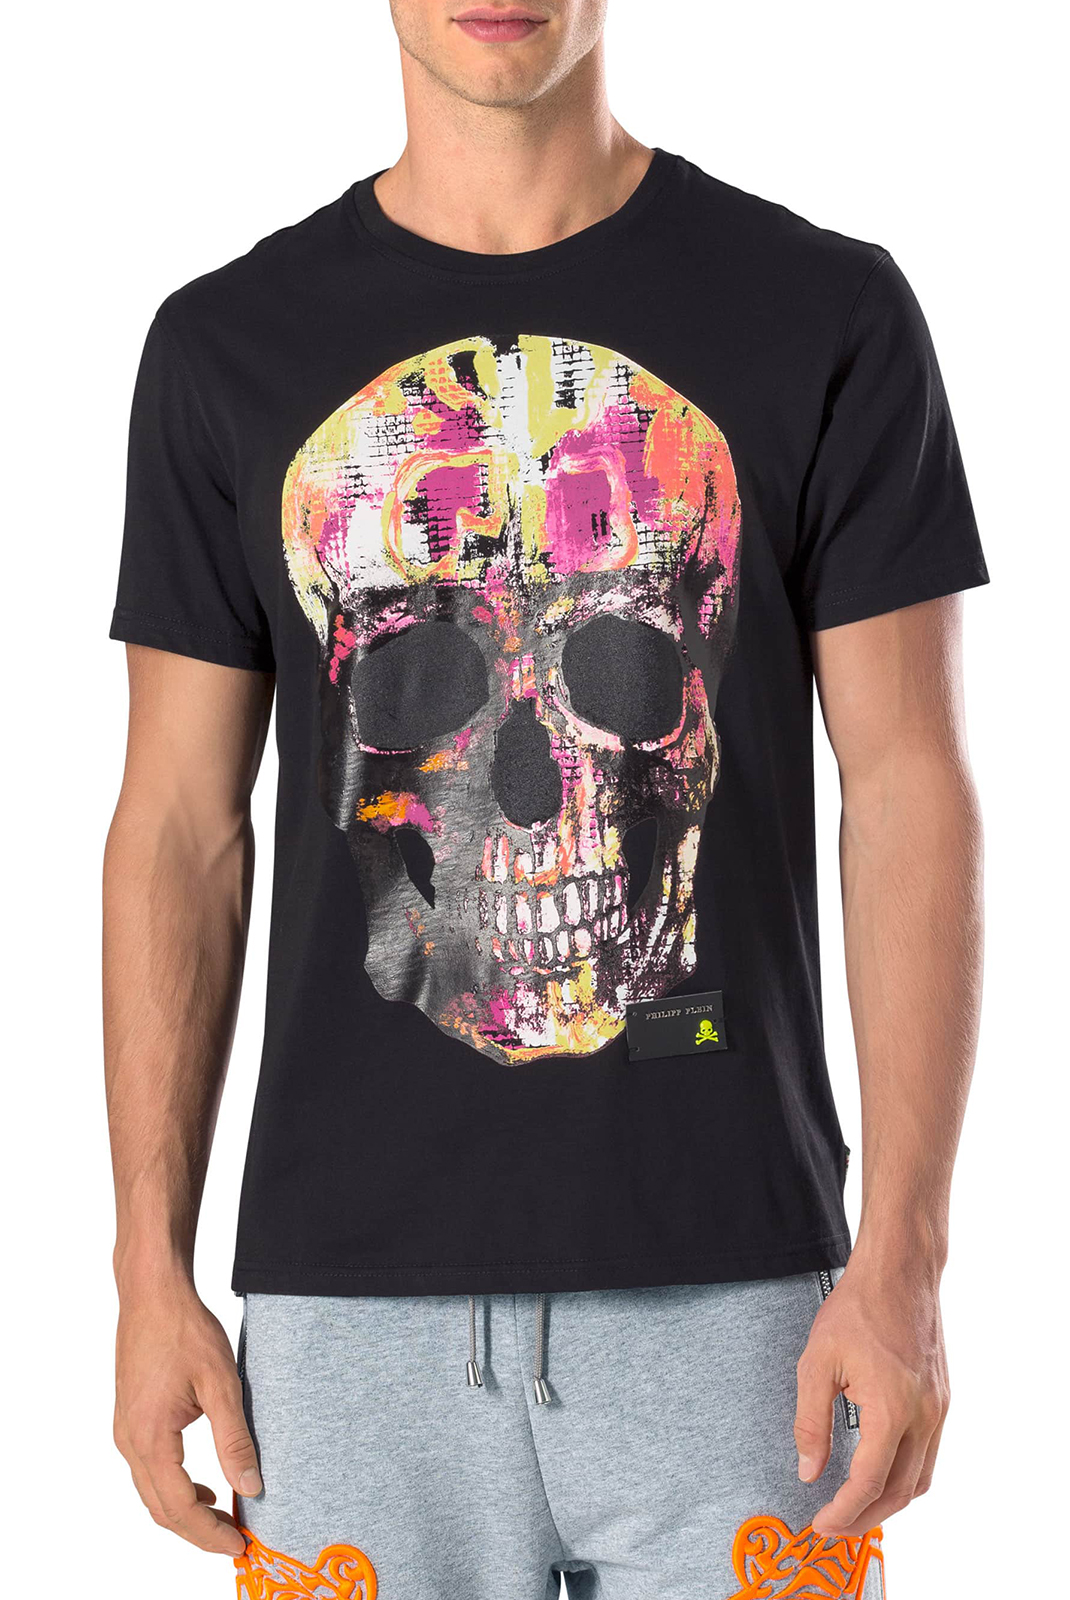 Tee-shirts  Philipp plein MTK1791 ROUND NECK SS NEED YOU BLACK